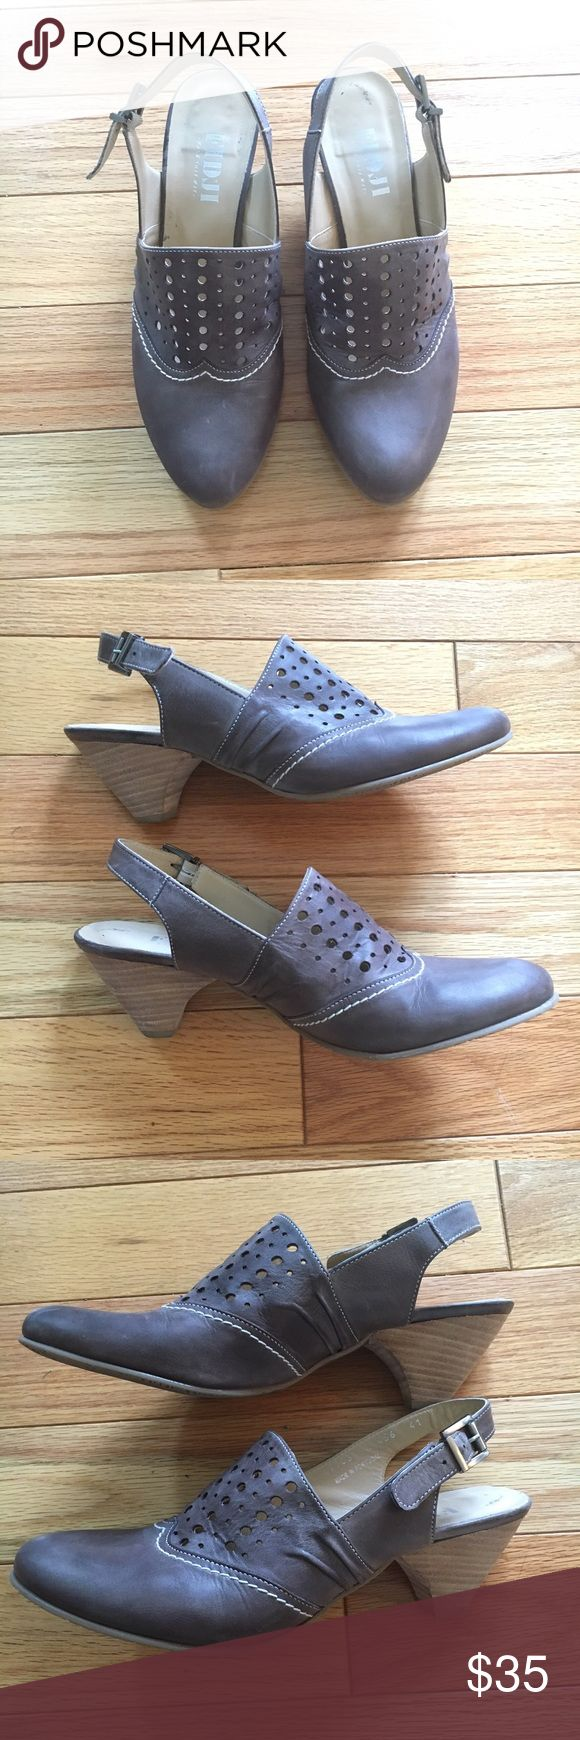 100% leather Fidji shoes Gorgeous brown leather slingback mules by Fidji. Leather has been conditioned and the shoes have only been worn a few times. Fidji Shoes Mules & Clogs